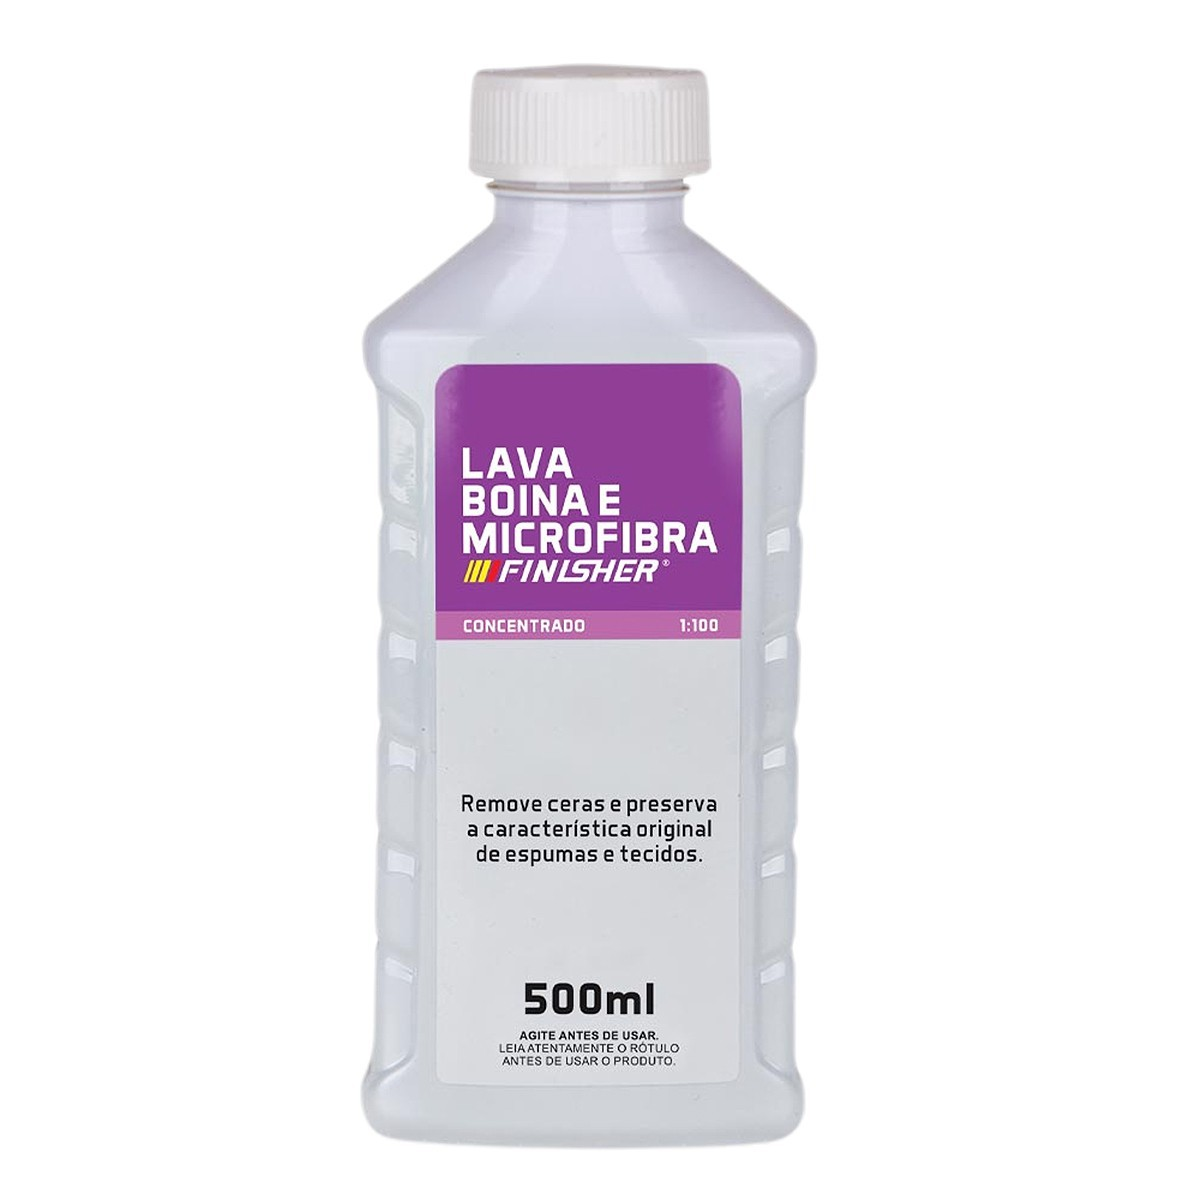 Lava Boinas e Microfibras 500ml Finisher